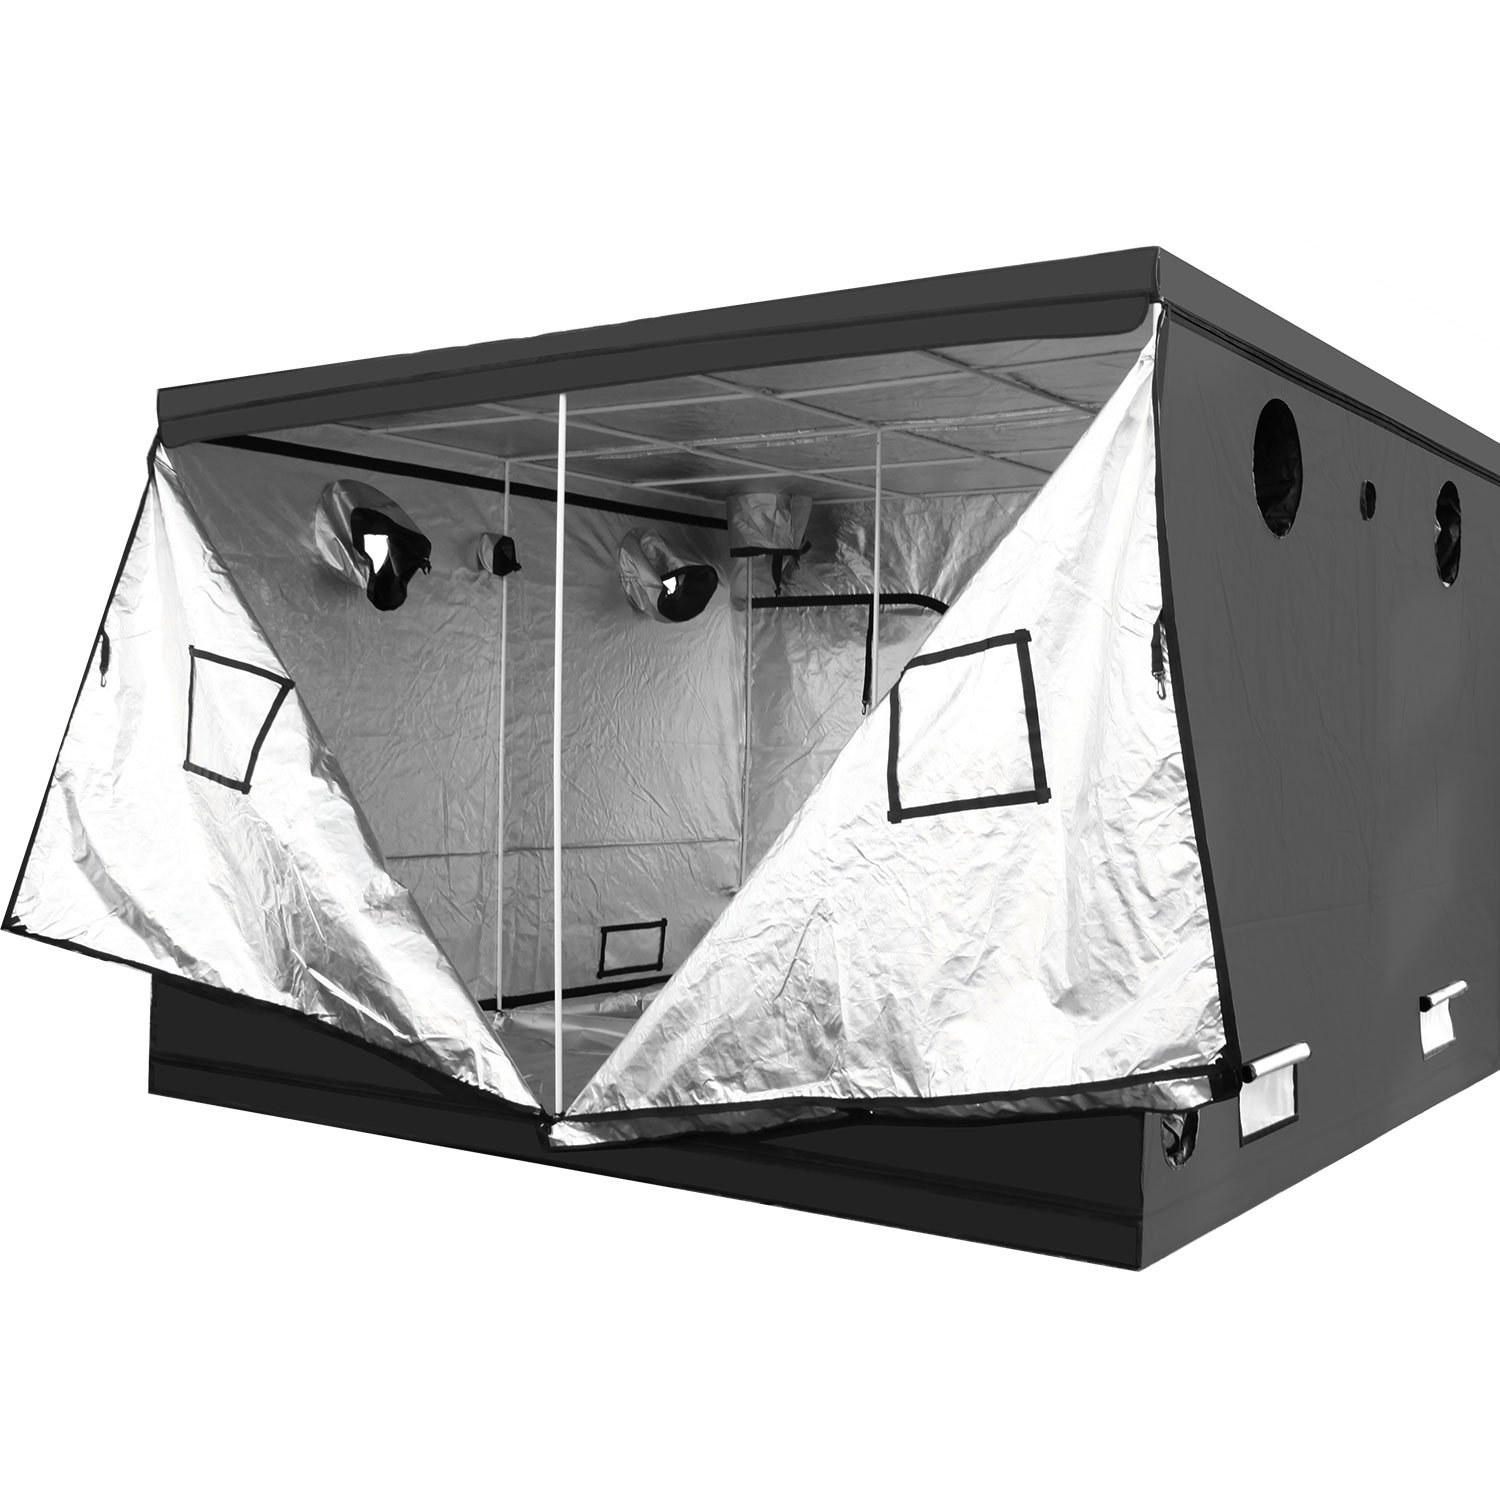 iPower 36x36x72 3x3 Hydroponic Mylar Grow Tent with Observation Window Tool Bag and Floor Tray for Grow Light and Indoor Plant Growing